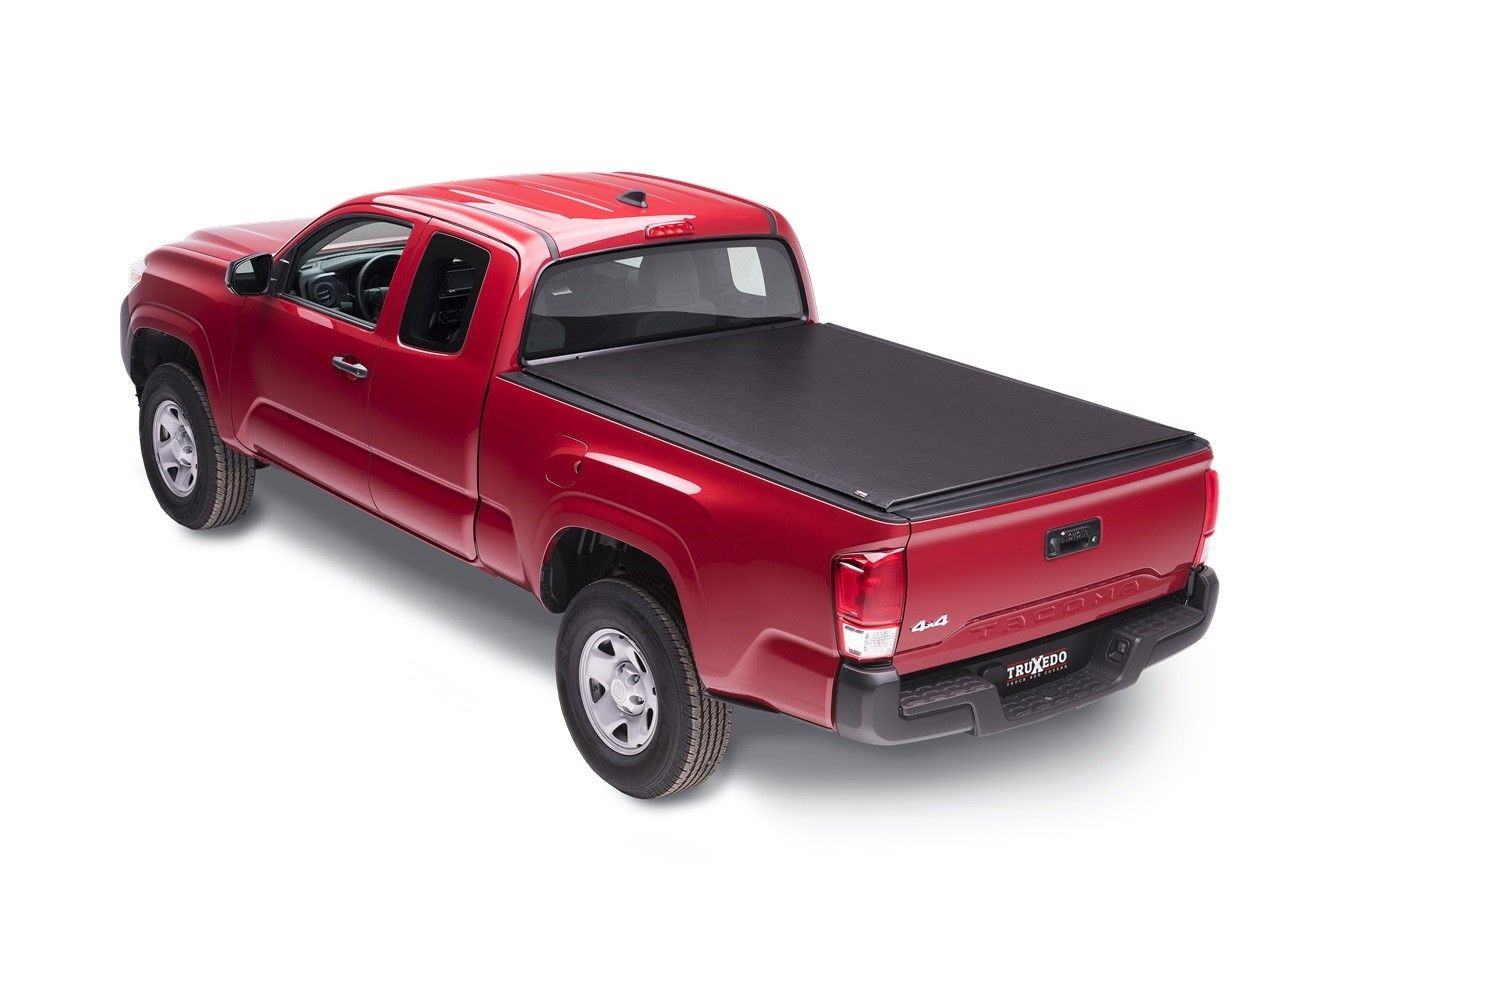 Pin By Streetsideauto On Truxedo Tonneau Cover Classic Car Insurance Truck Bed Covers